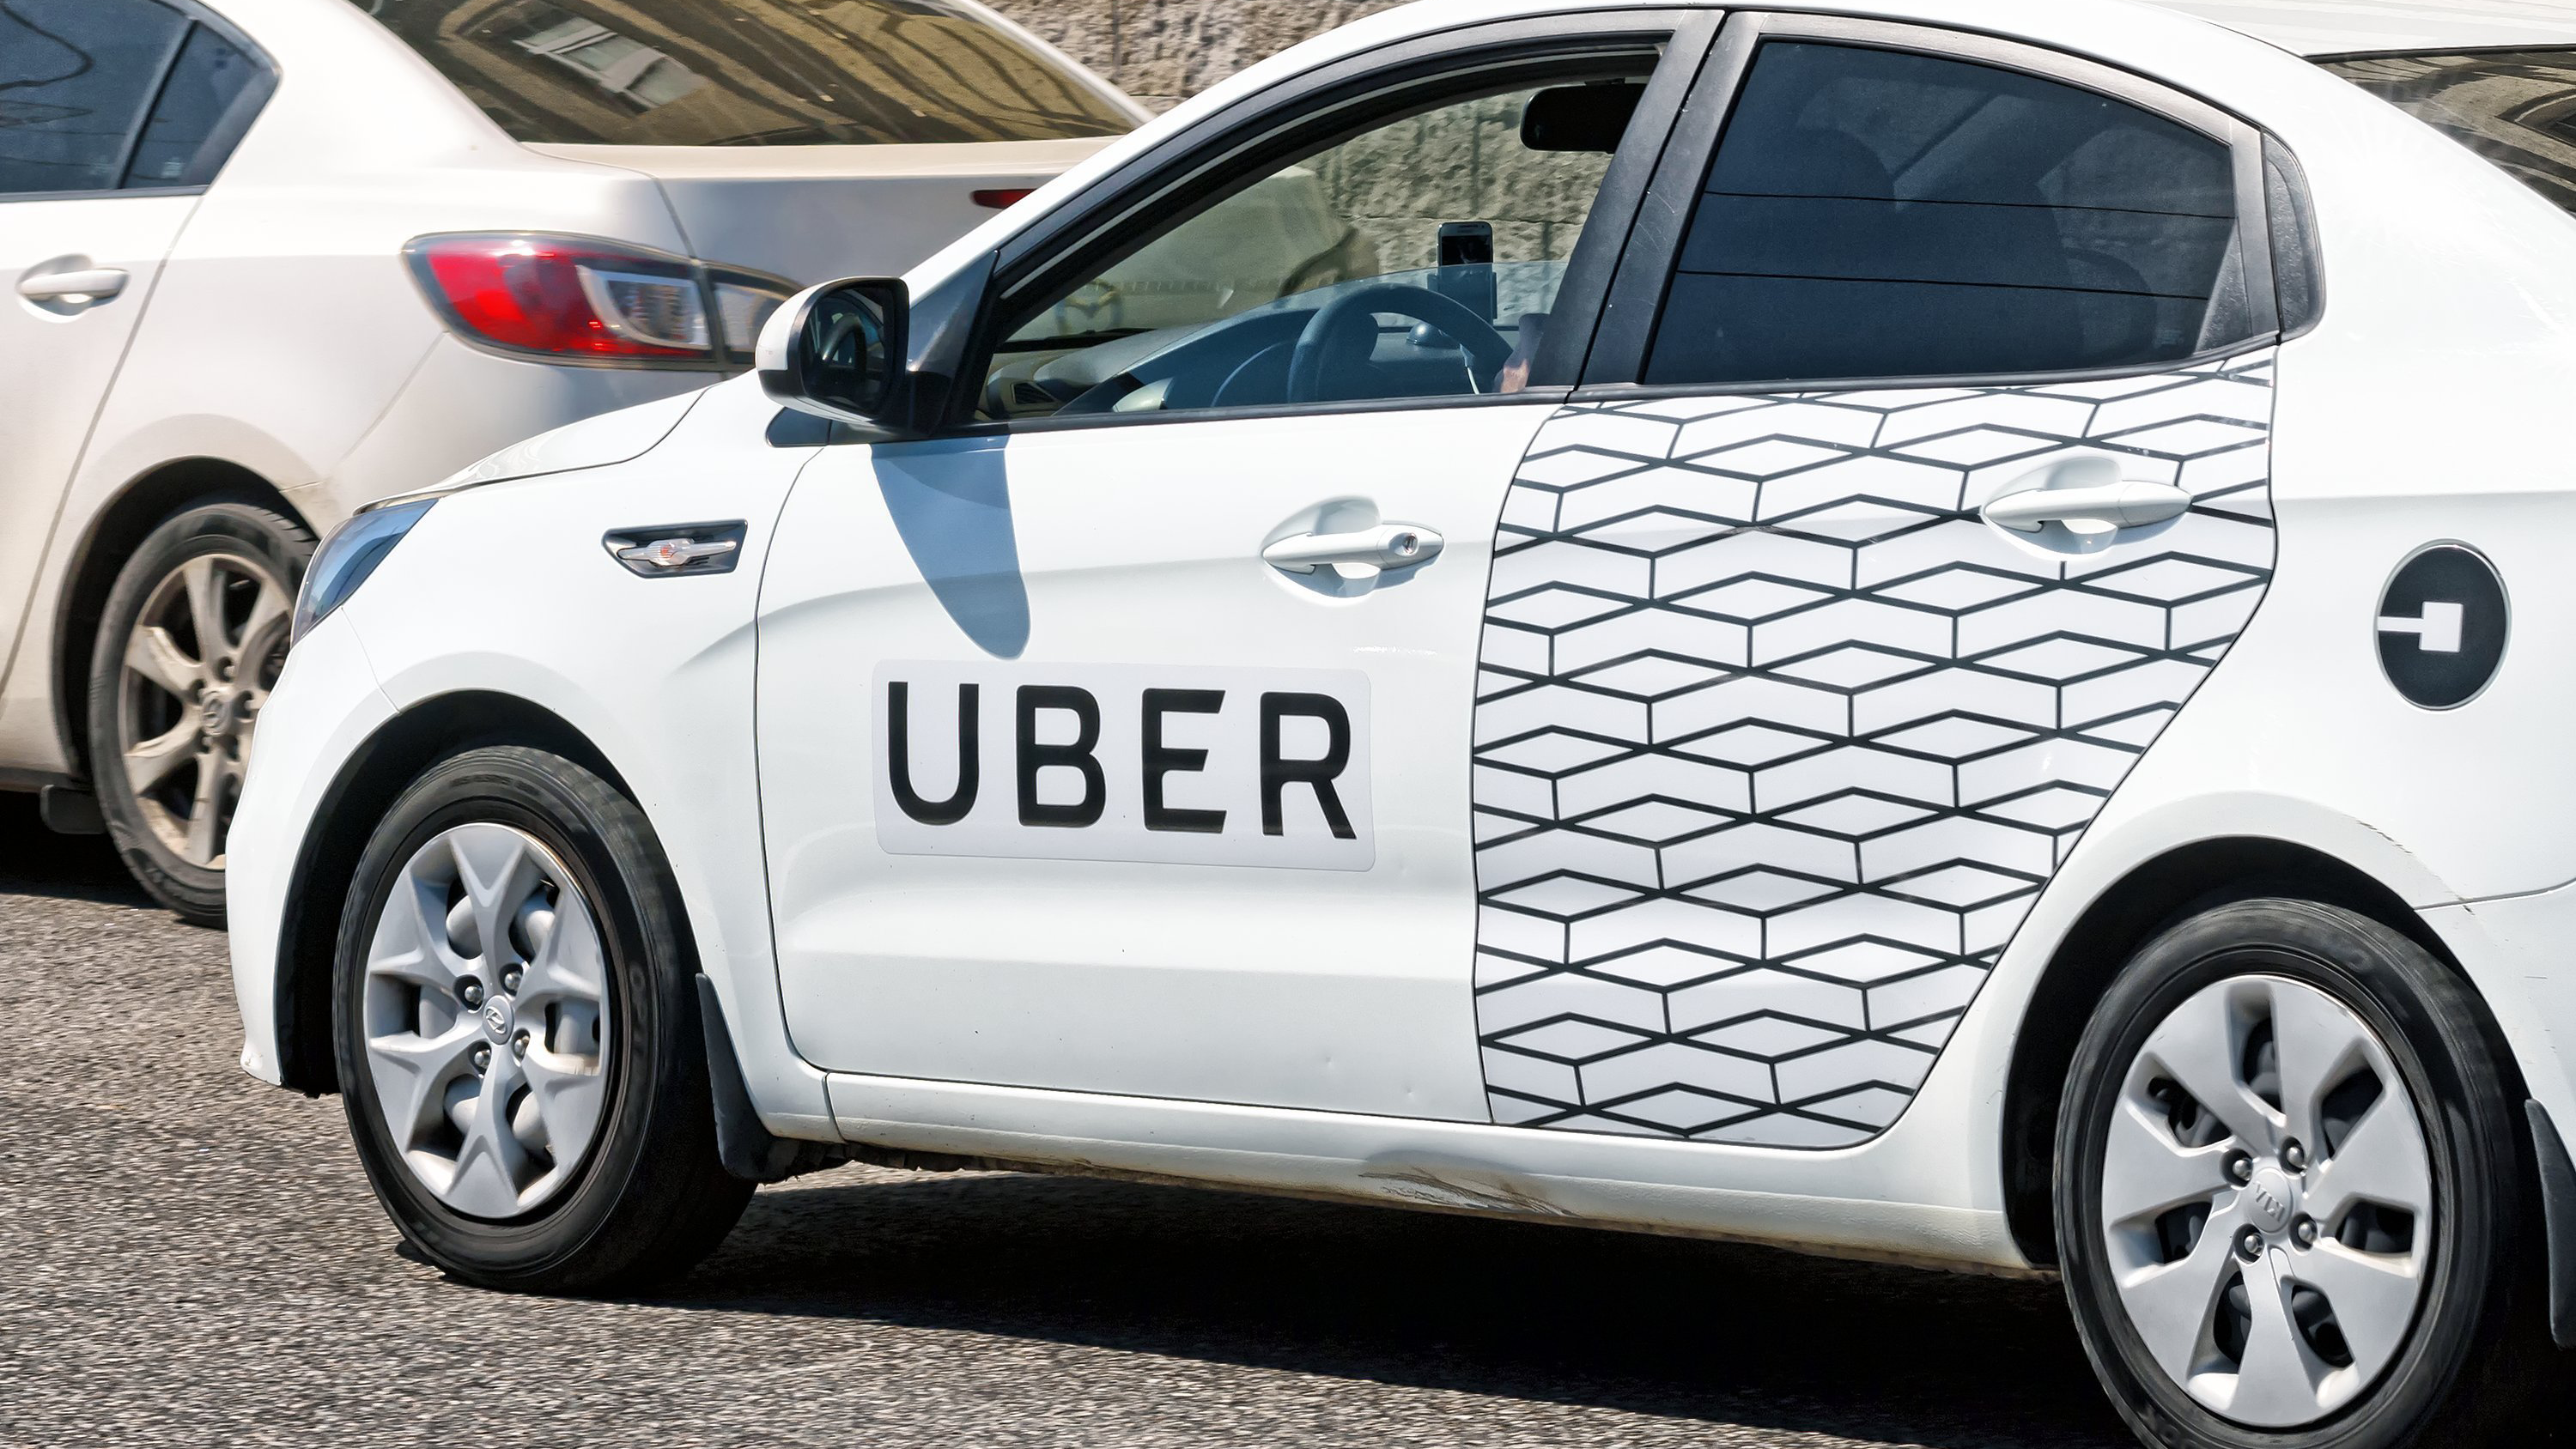 For many, Uber's on-demand system poses a threat to a culture of car ownership.